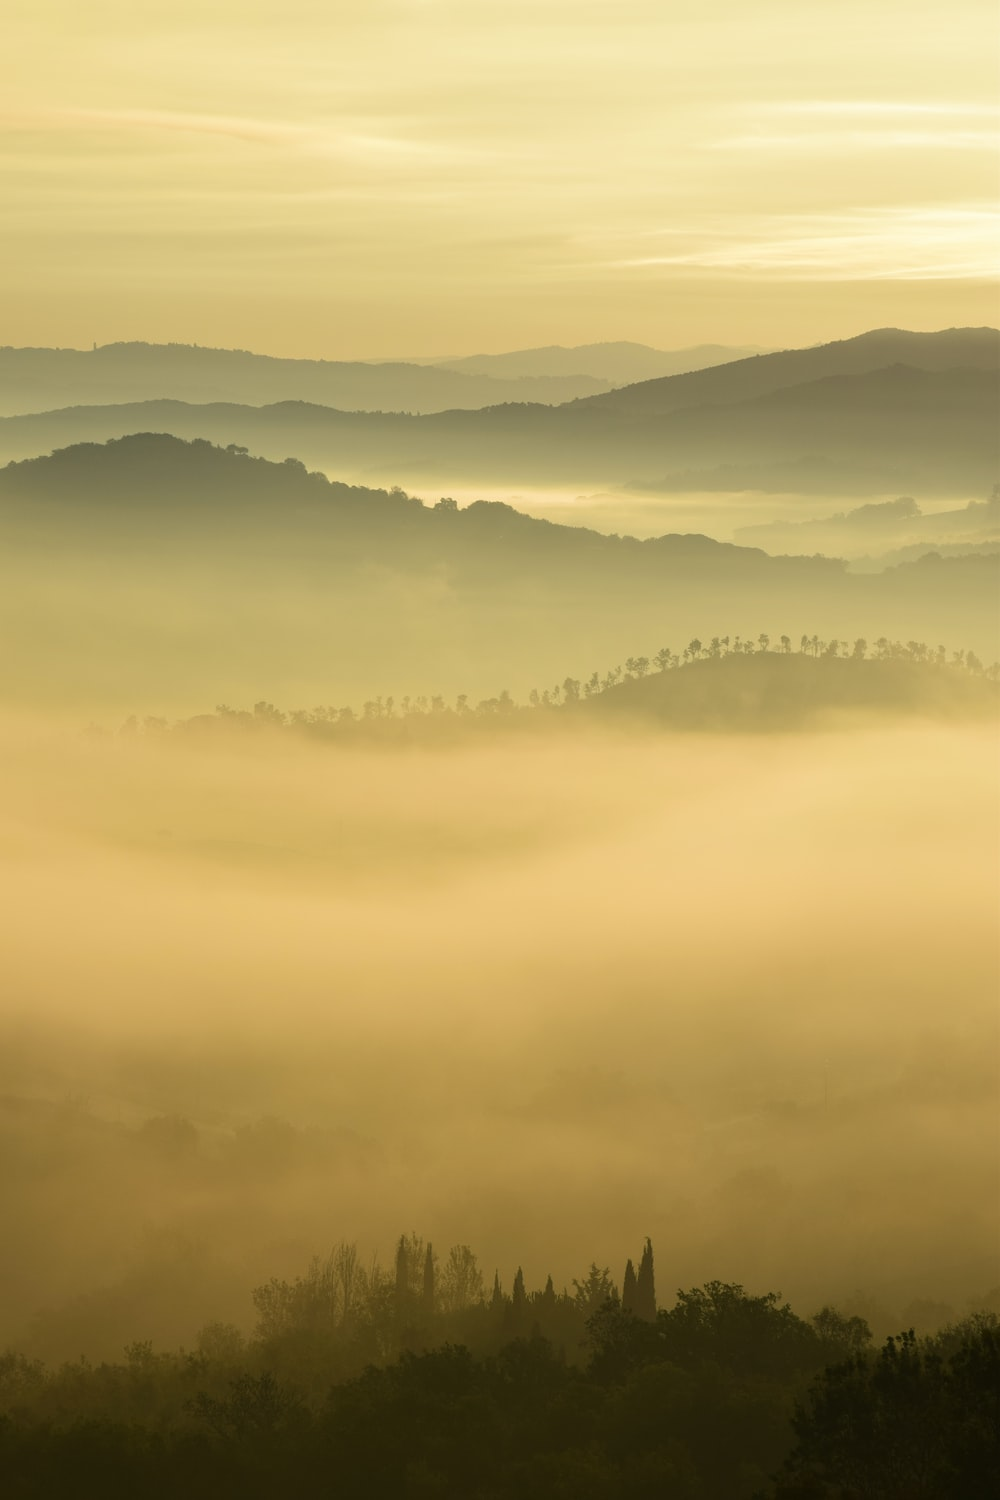 trees and hill surrounded by fogs under white clouds